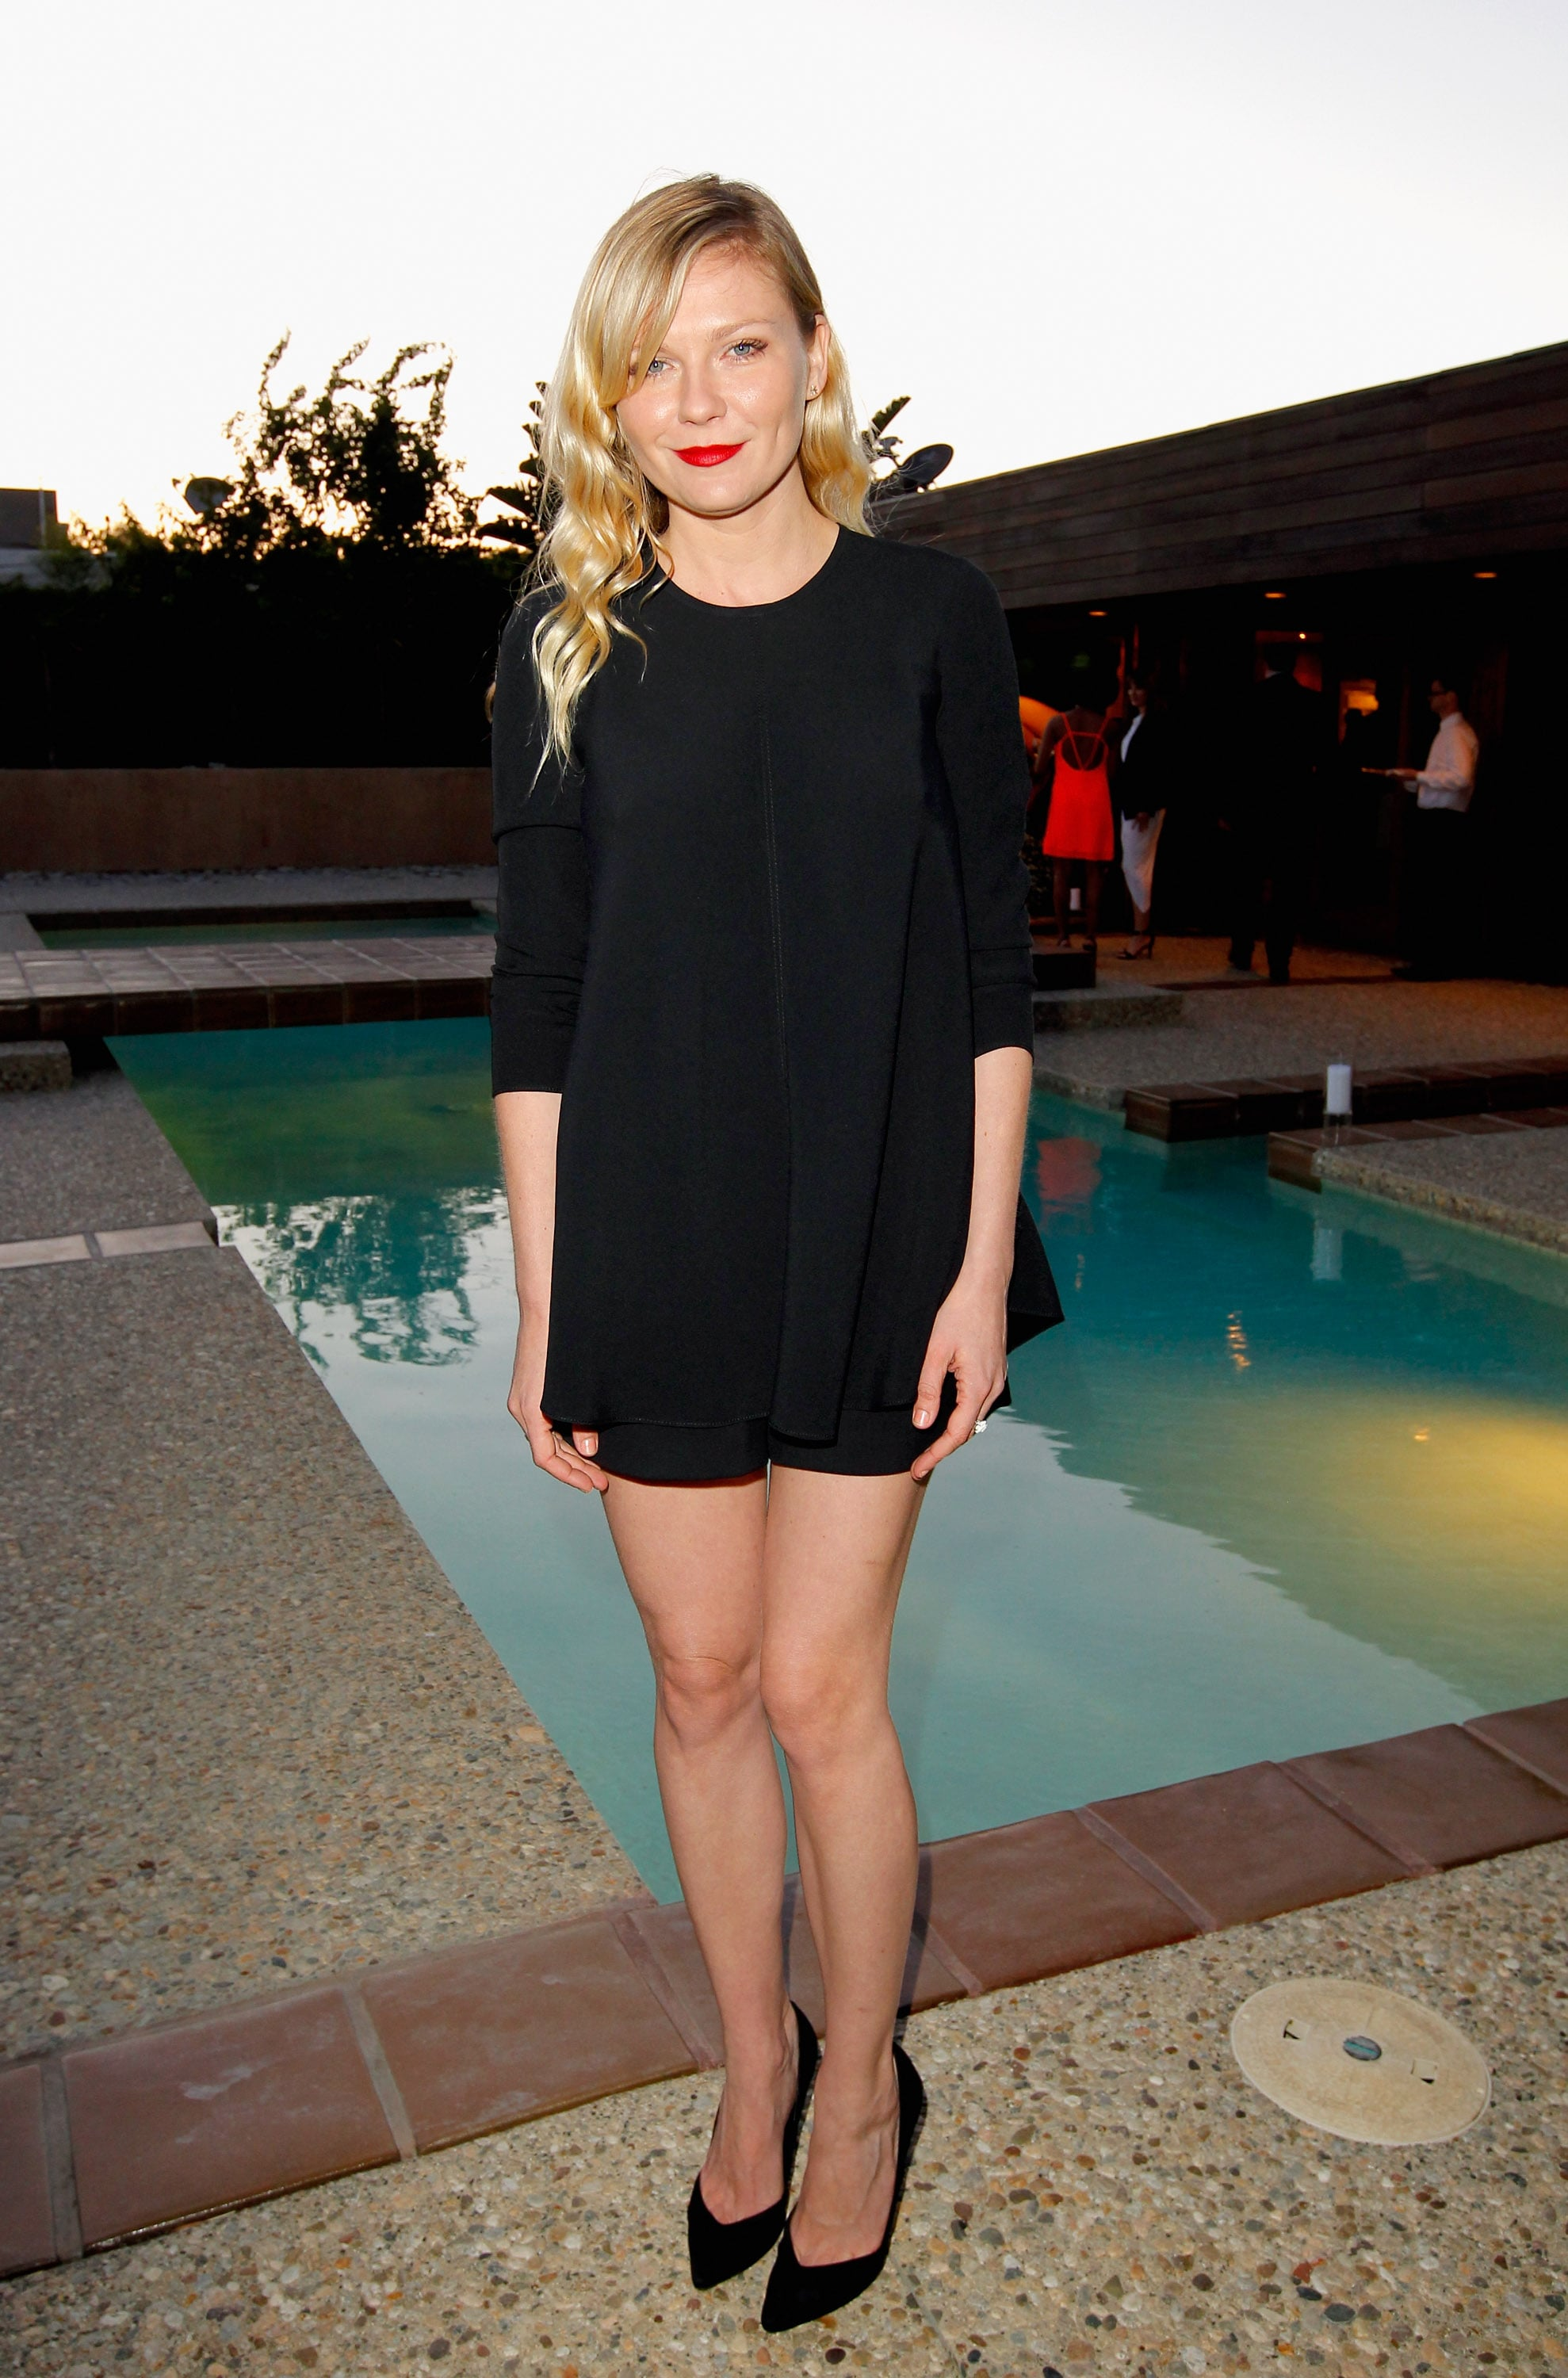 Kirsten Dunst looked ultrachic in a black top and shorts set for Barneys's Proenza Schouler dinner.